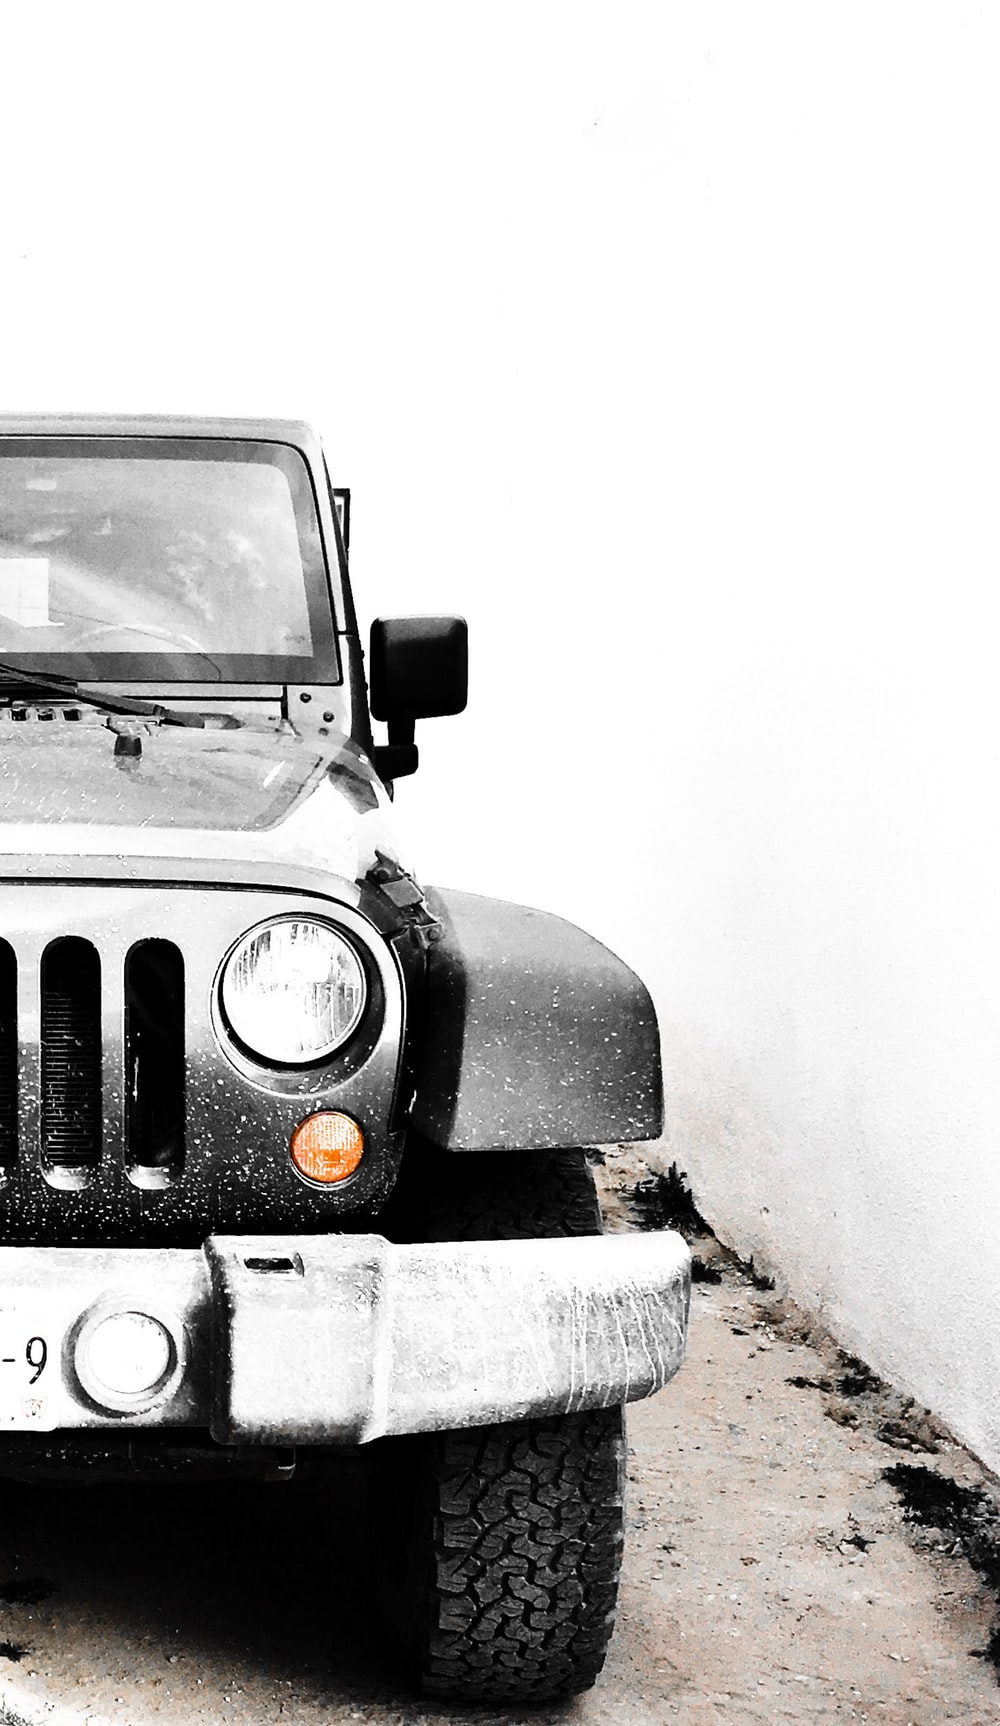 grey Jeep Wrangler on snow-covered ground during daytime